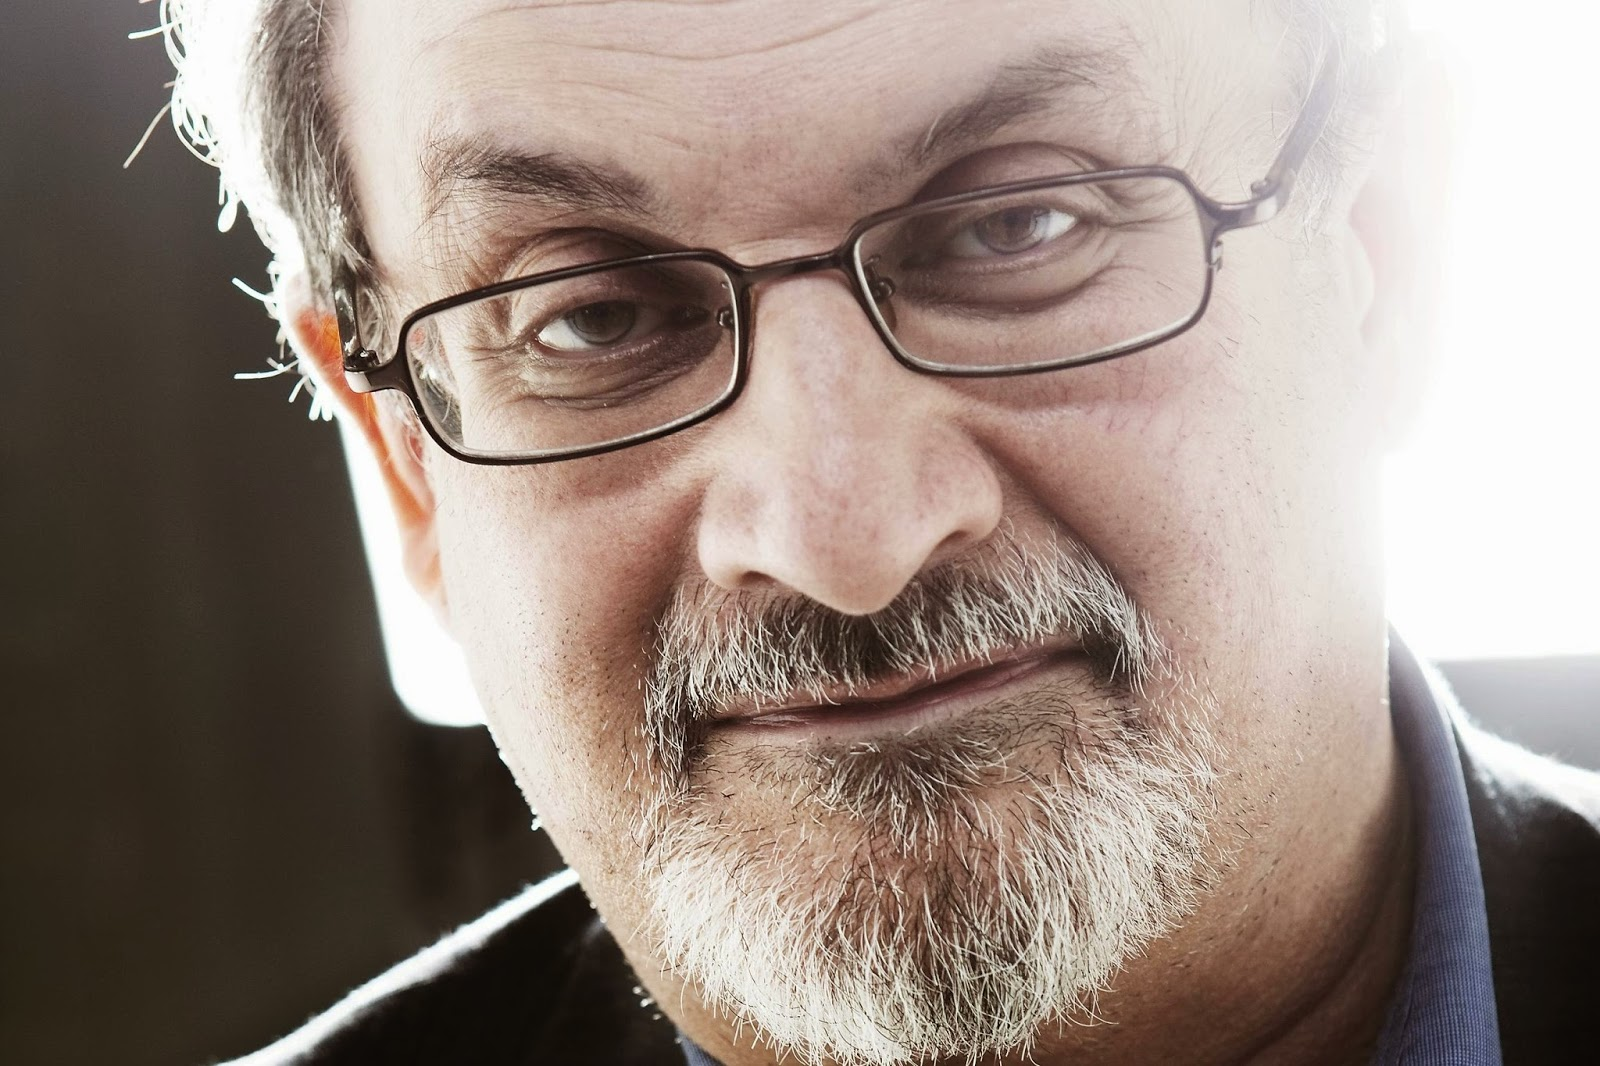 dragon my hero salman rushdie winner of the 2014 pen pinter prize my hero salman rushdie winner of the 2014 pen pinter prize